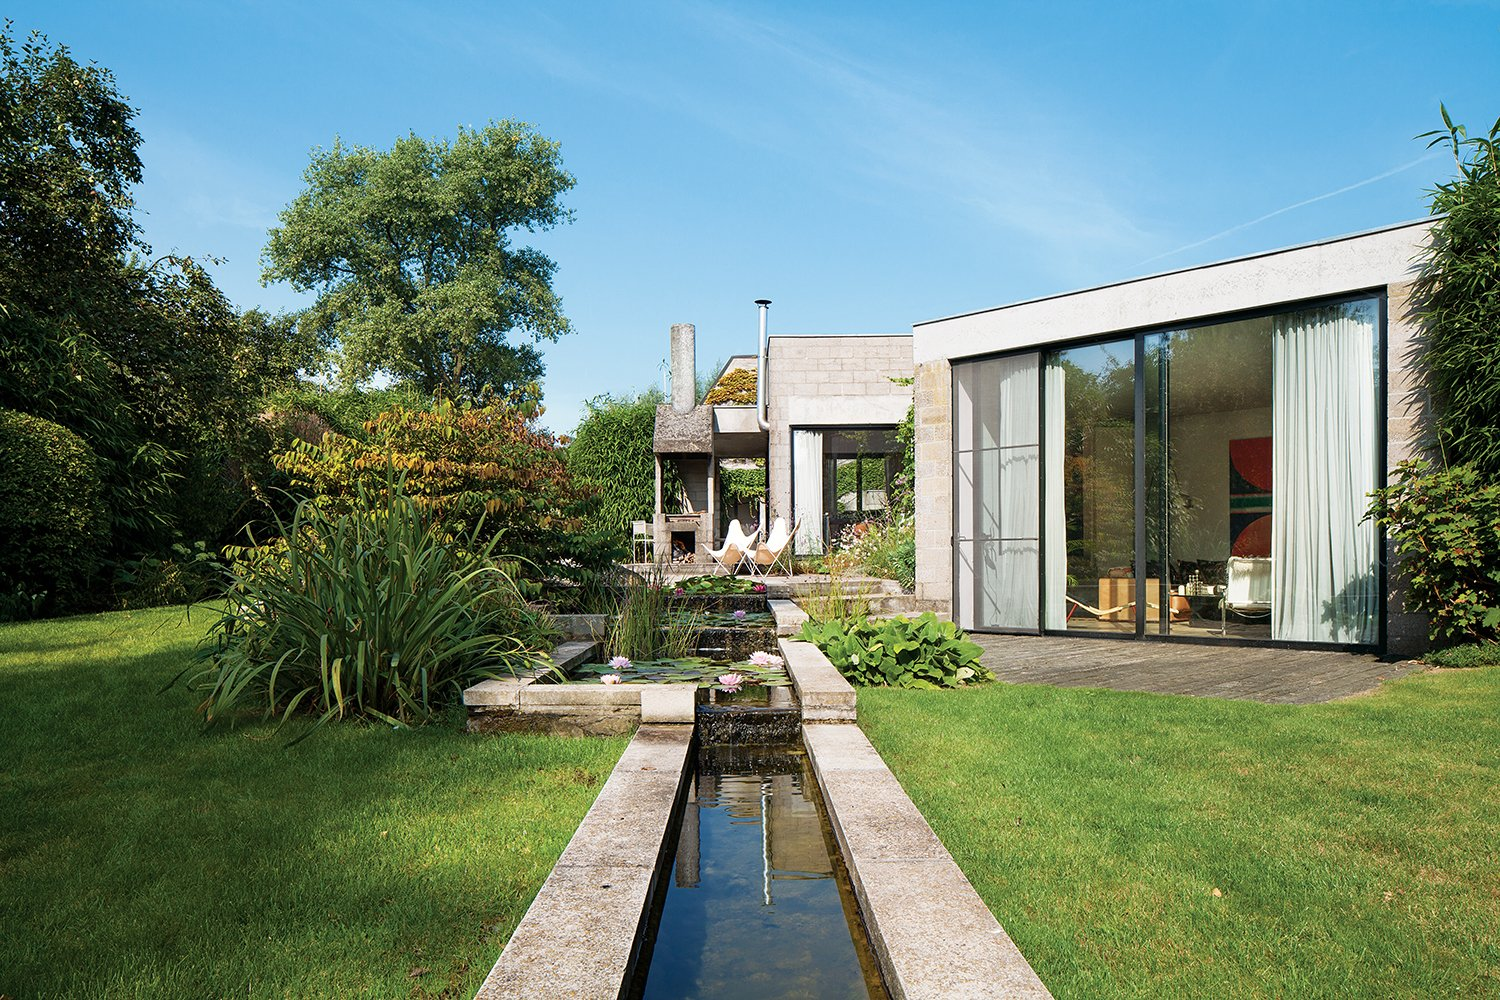 When Belgian fashion retailer Nathalie Vandemoortele was seeking a new nest for her brood, she stumbled upon a fortresslike house in the countryside designed in 1972 by a pair of Ghent architects, Johan Raman and Fritz Schaffrath. While the Brutalist concrete architecture and petite but lush gardens suited her tastes to a tee, the interiors needed a few updates. Tagged: Grass, Trees, Back Yard, Exterior, House, and Concrete Siding Material.  Concrete by Brandon Armstrong from A Concrete Home in Rural Belgium